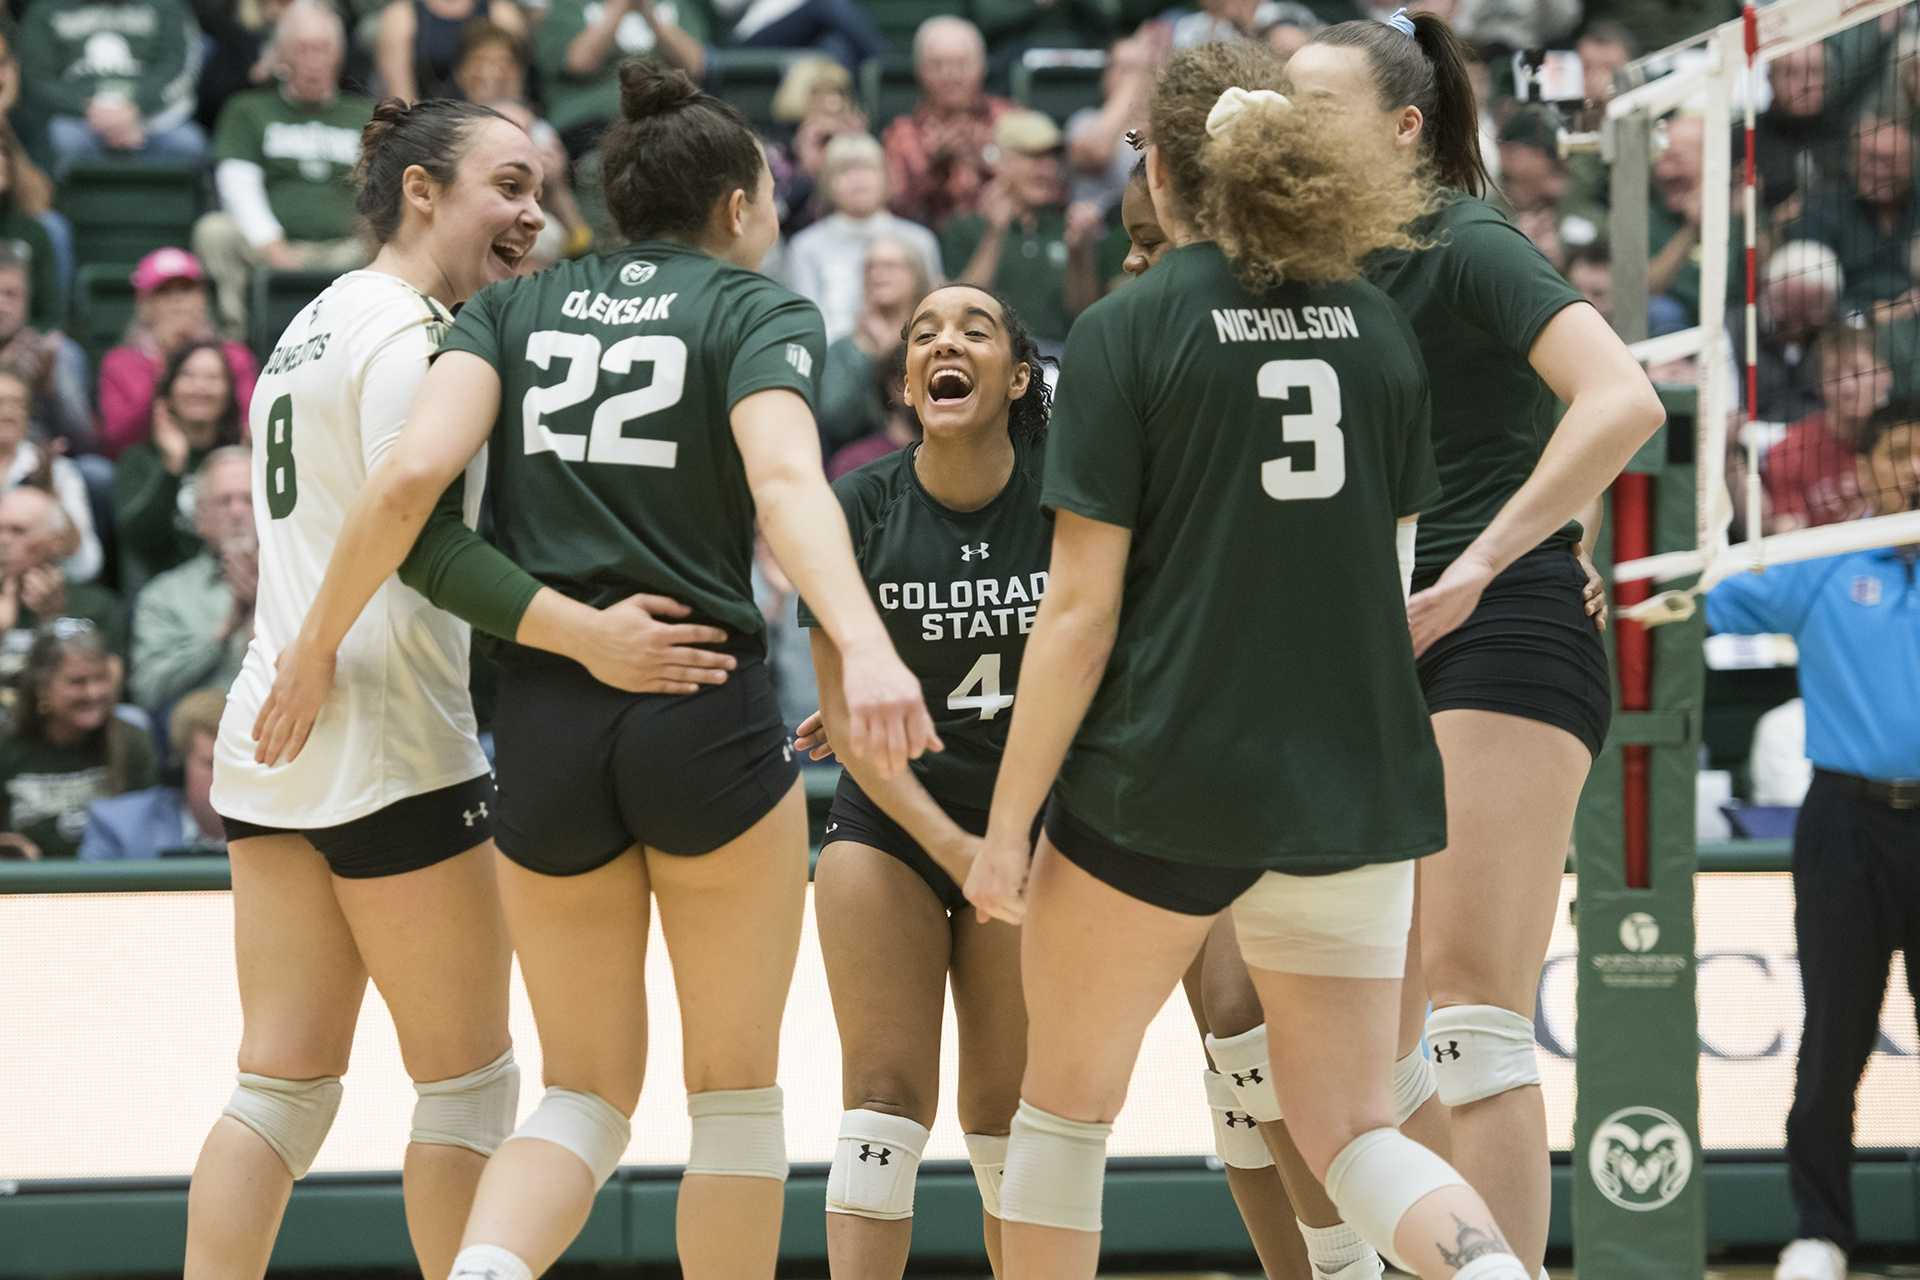 Freshman Brooke Hudson celebrates a point in the huddle with her volleyball teammates in the second match.